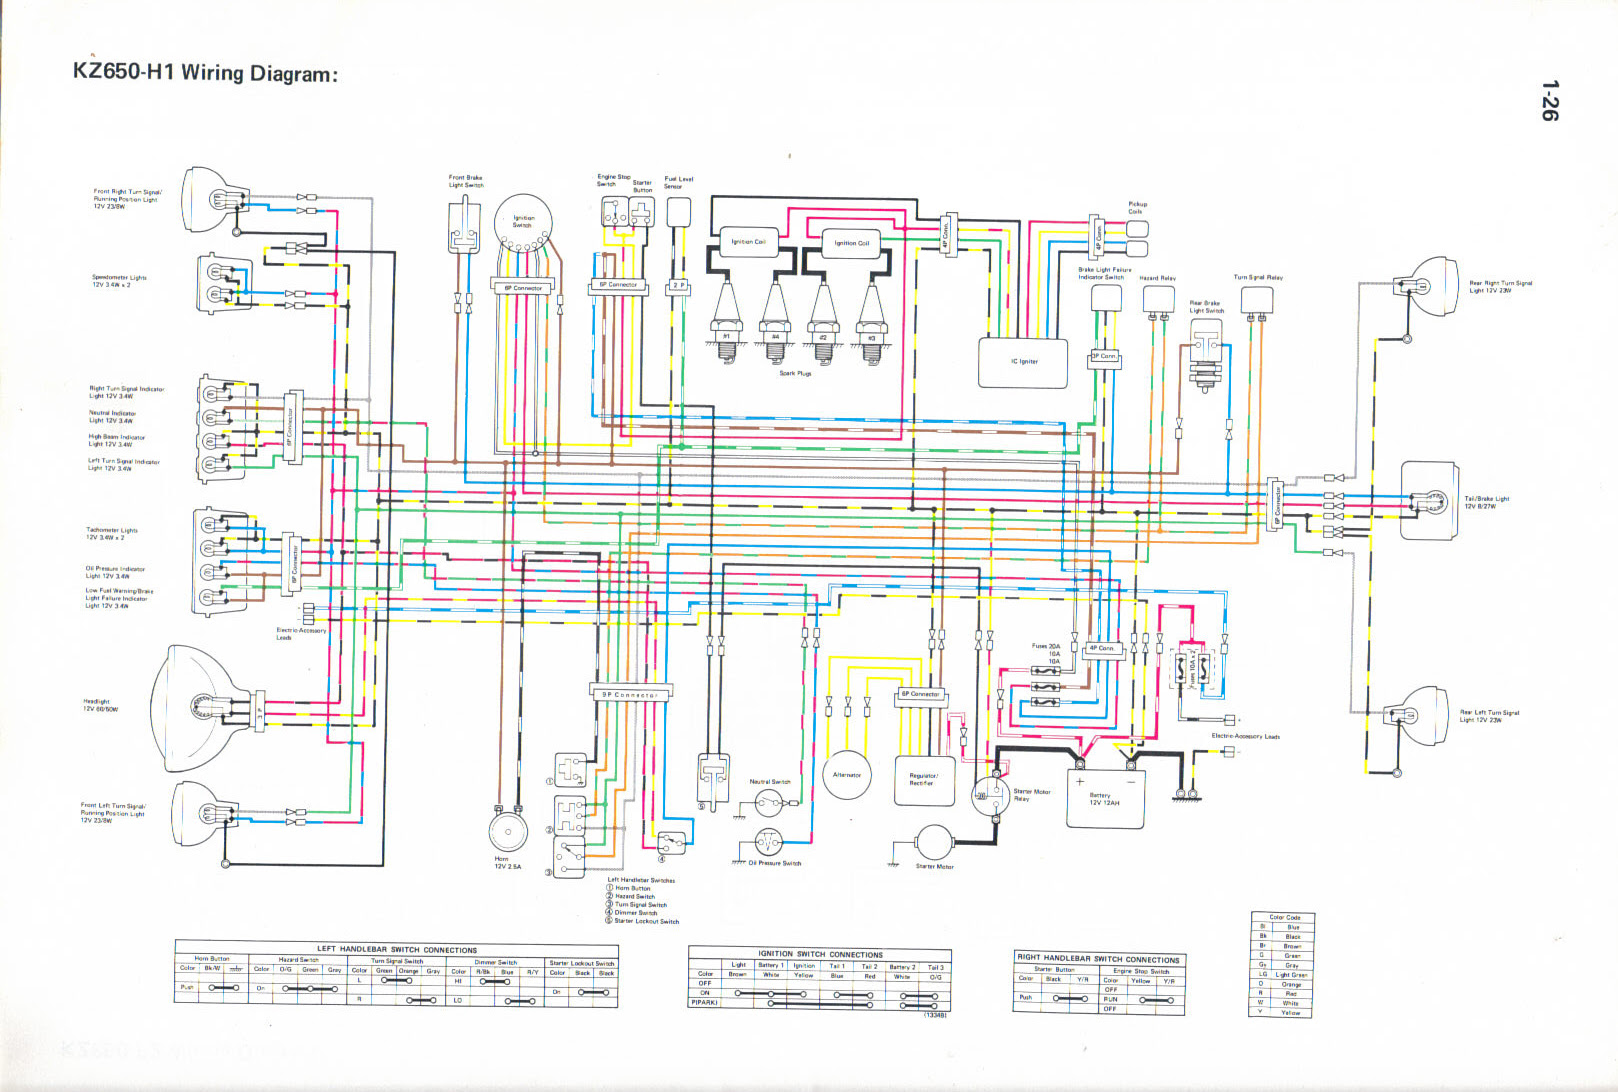 1983 Kawasaki Wiring Diagram 2005 Toyota Highlander Fuse Diagram Maclareners Tegang Madfish It